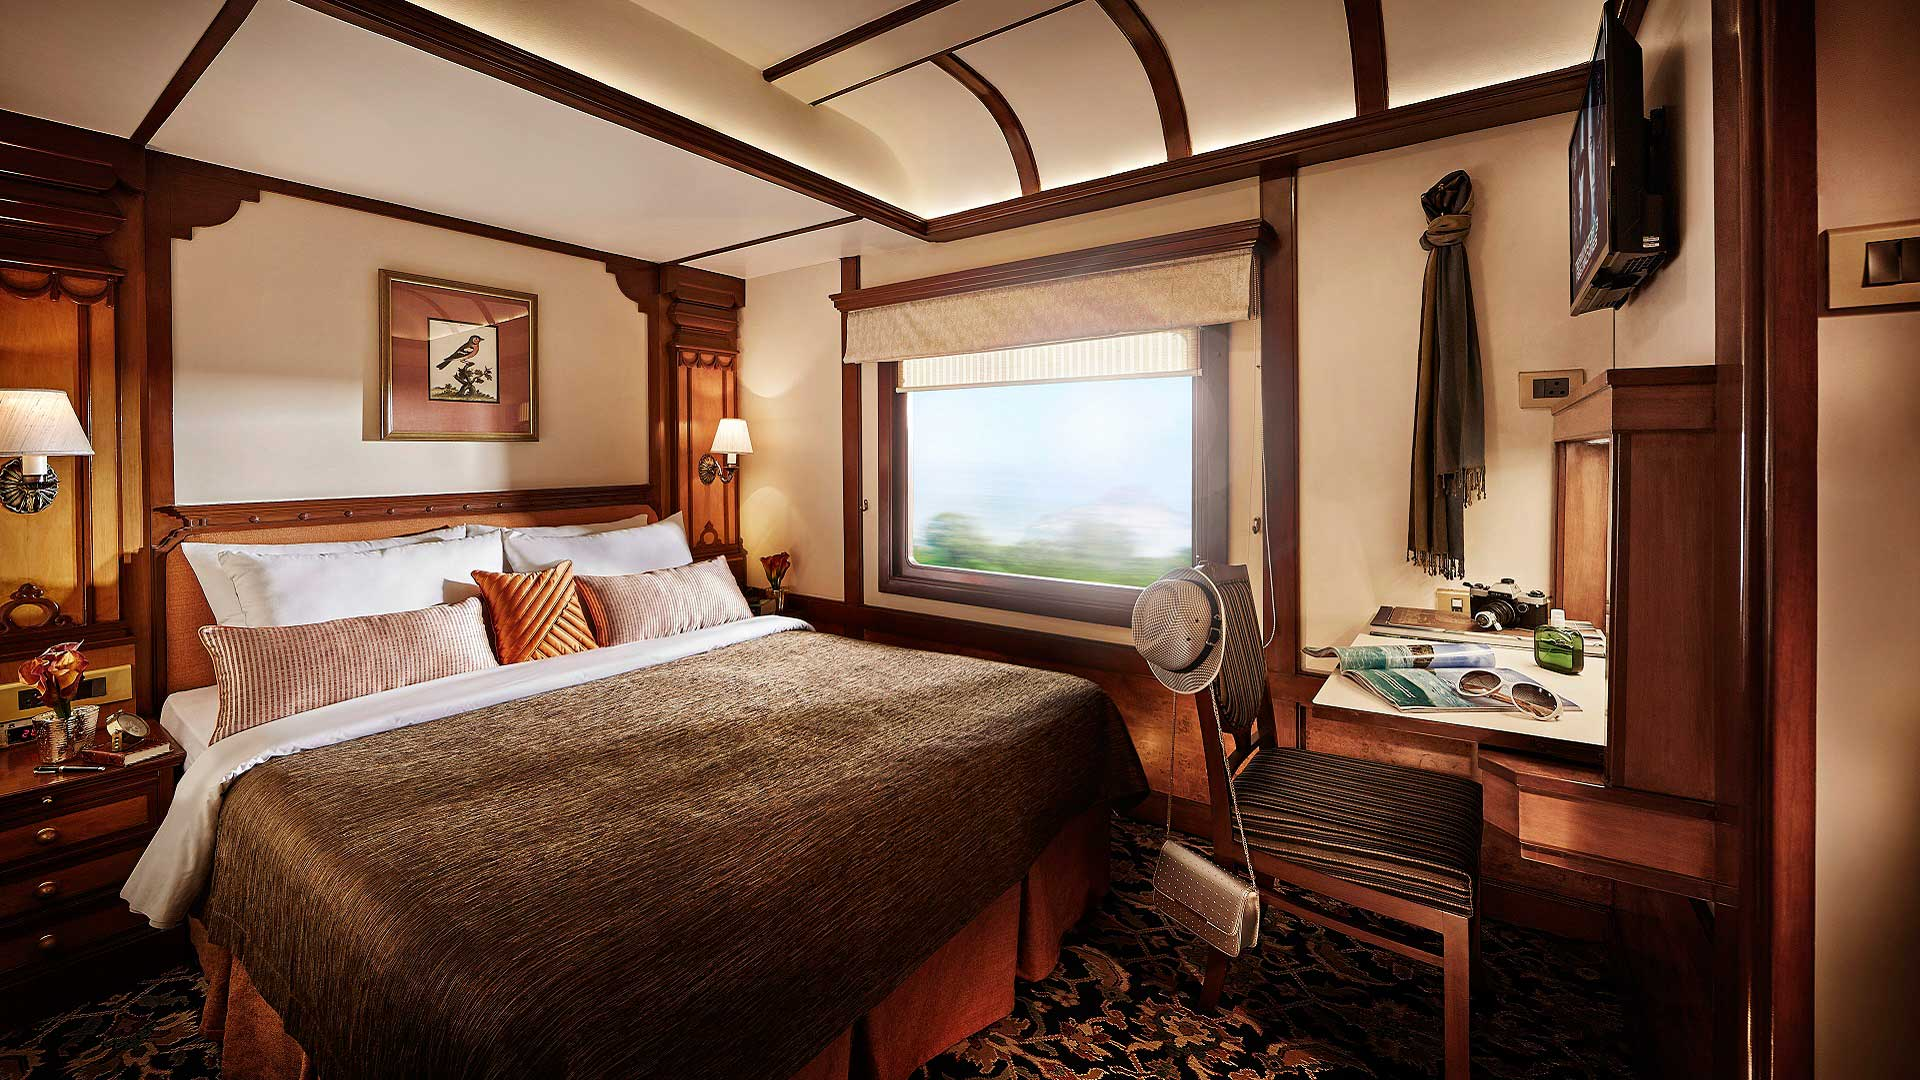 A Presidential Suite bedroom aboard the Deccan Odyssey train, which travels across India with GeoEx